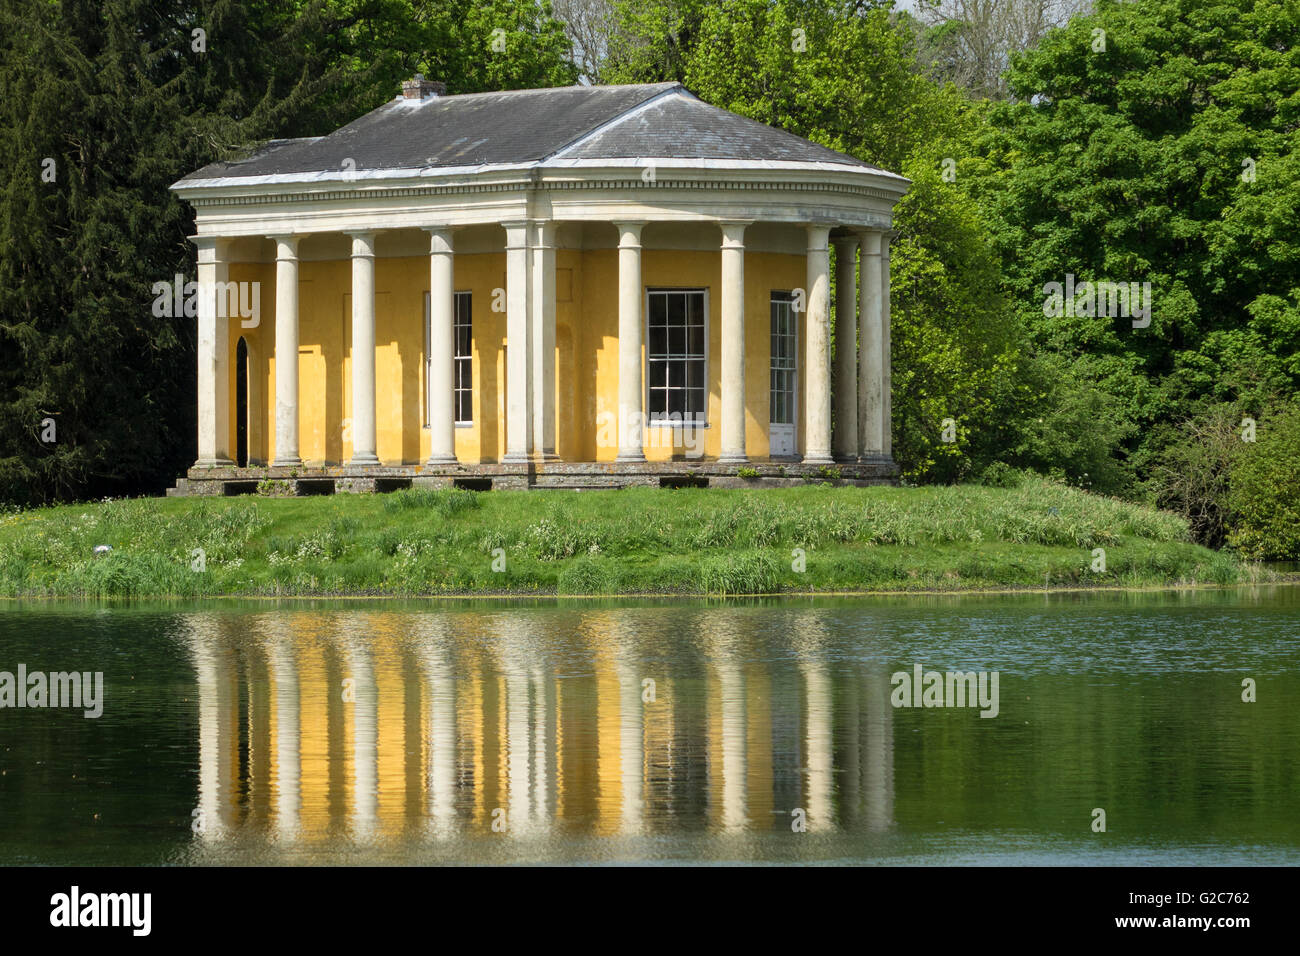 England, Buckinghamshire, West Wycombe park, Music temple - Stock Image